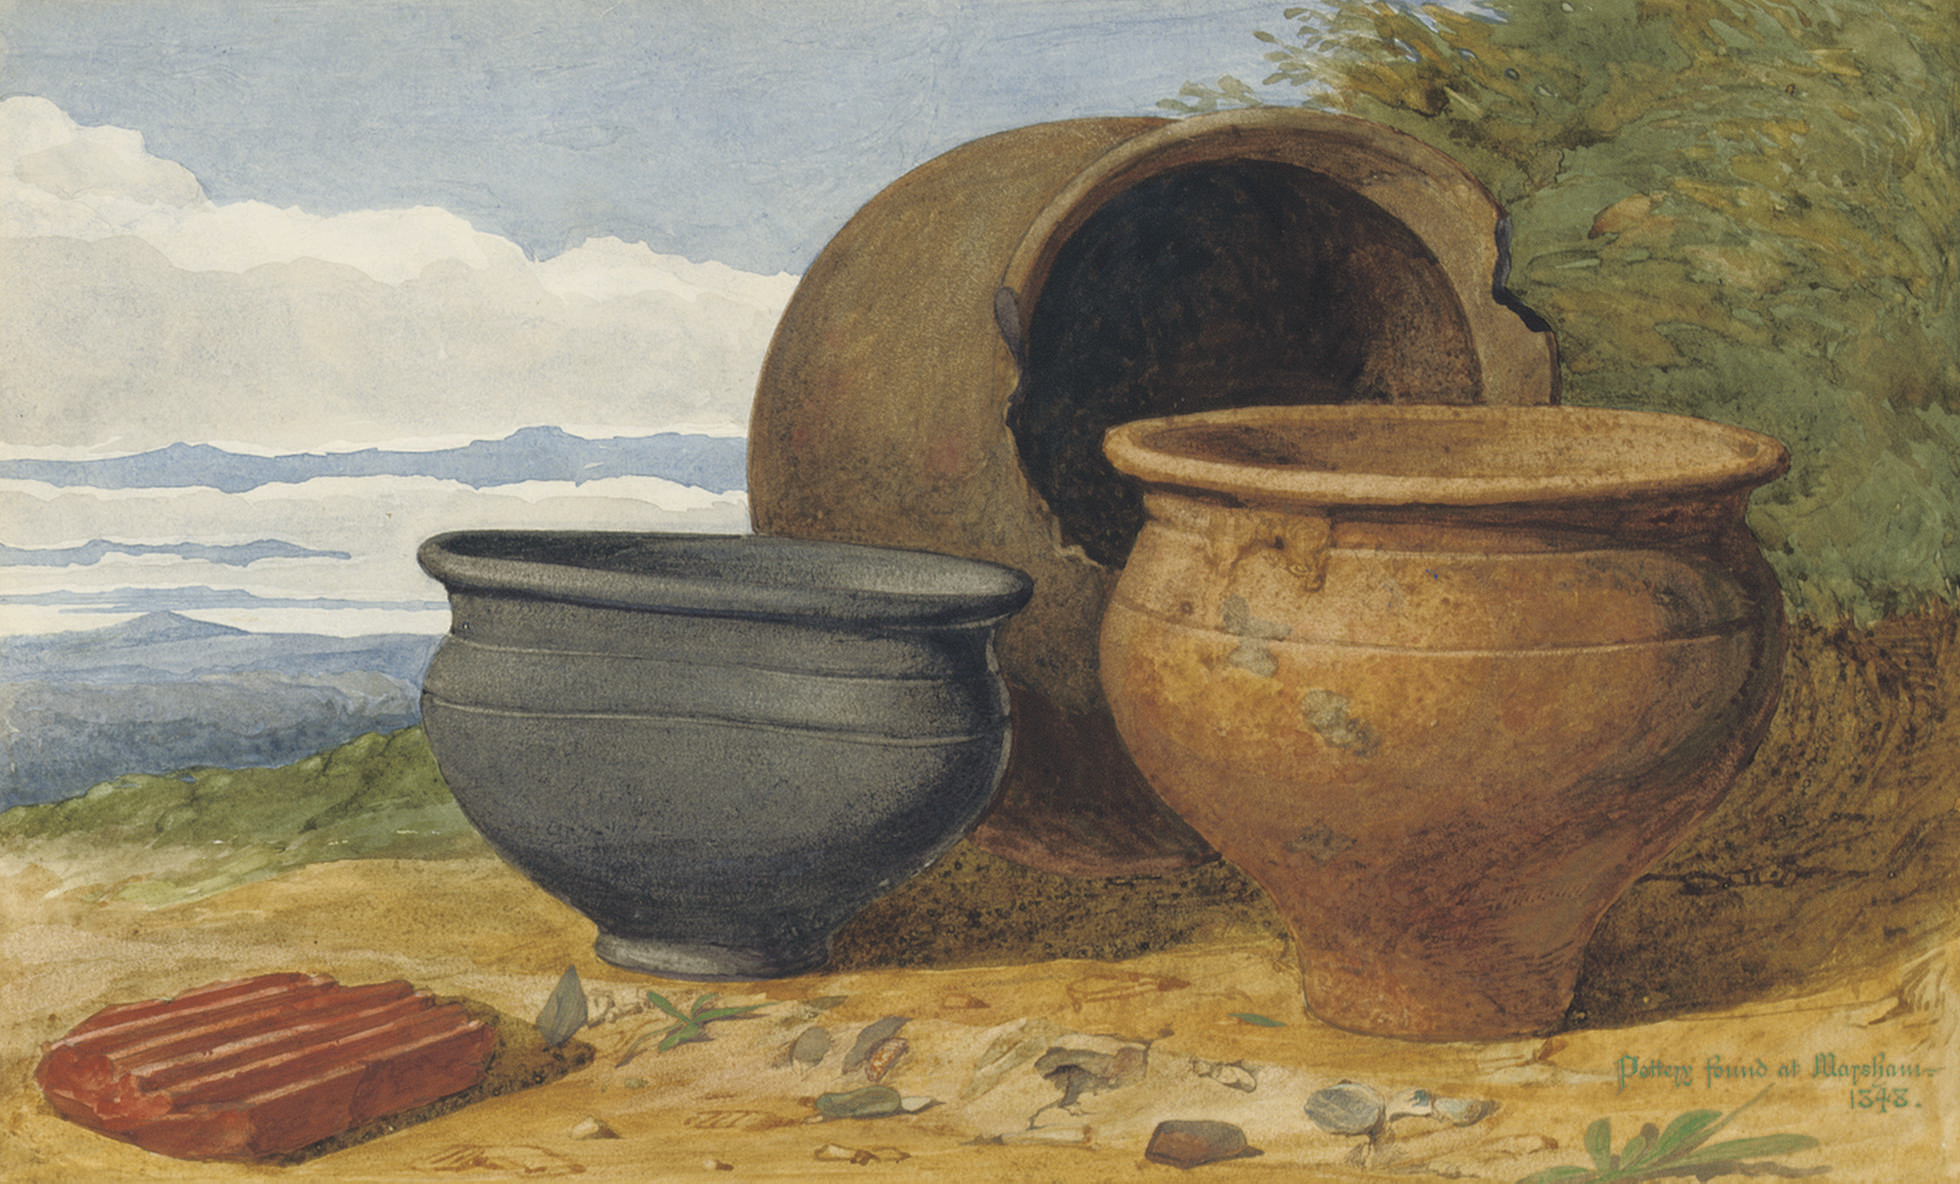 Pottery found at Marsham, Norfolk, 1848